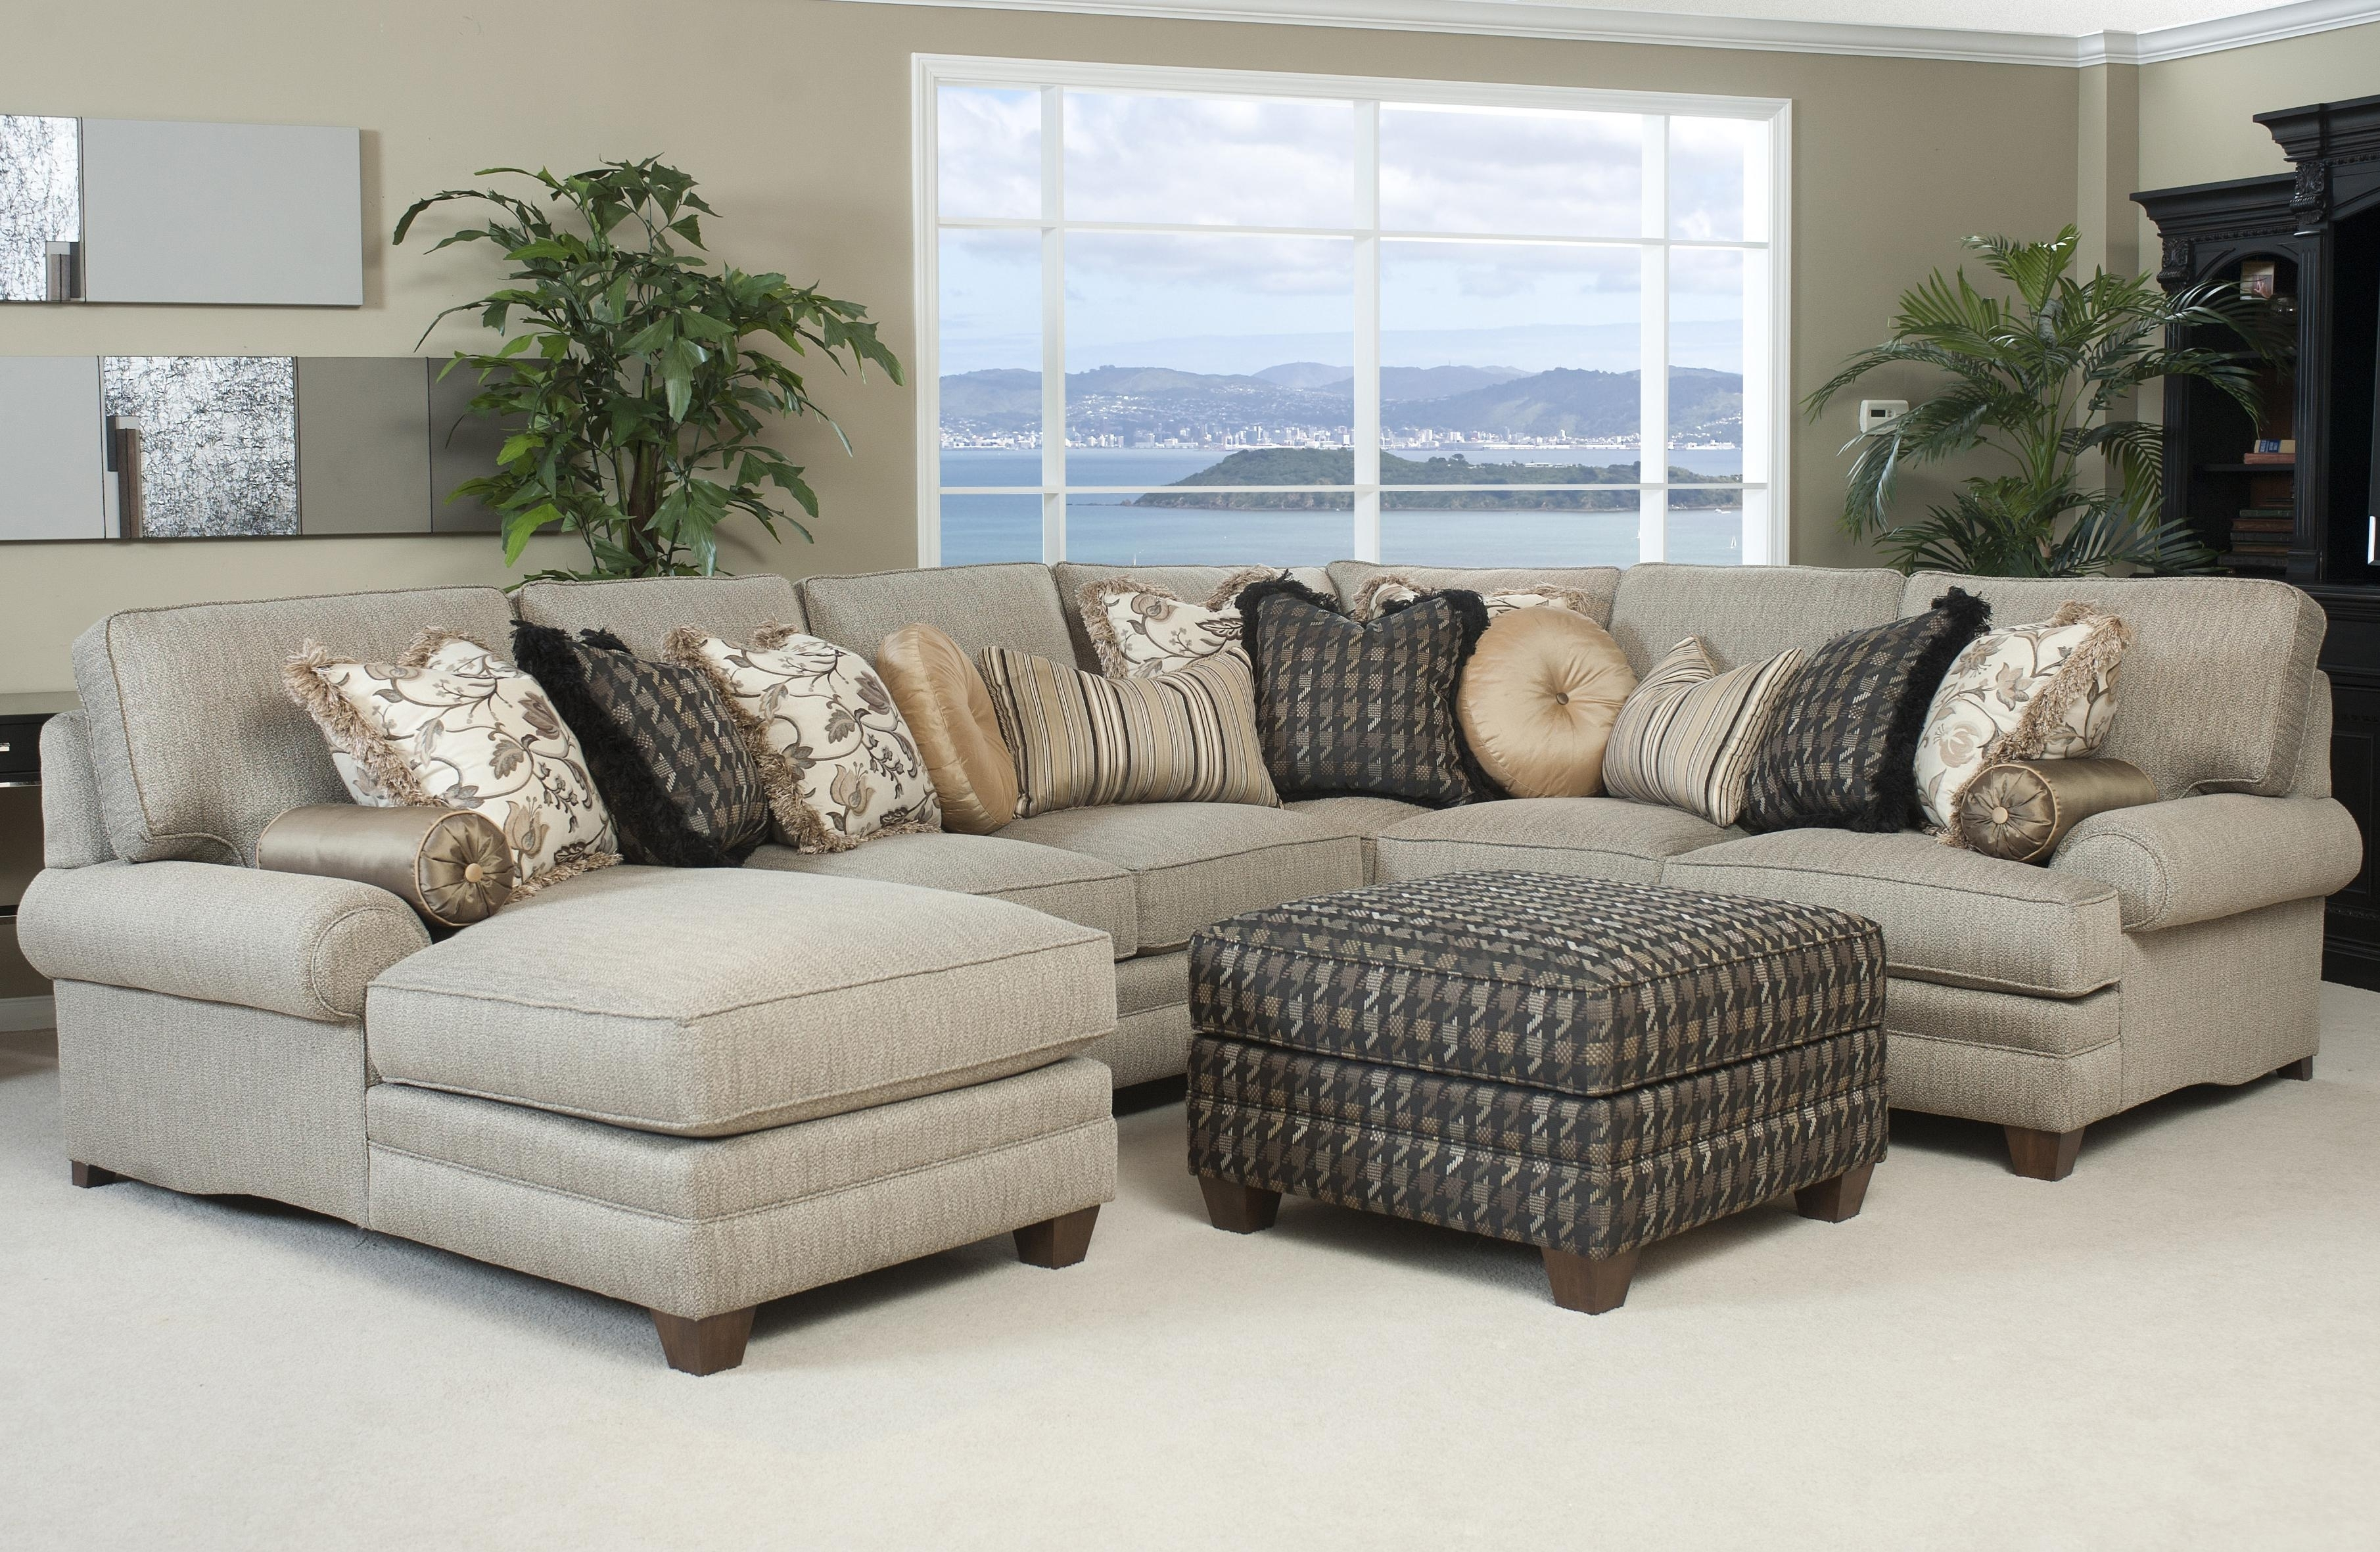 10 ideas of comfy sectional sofas sofa ideas. Black Bedroom Furniture Sets. Home Design Ideas